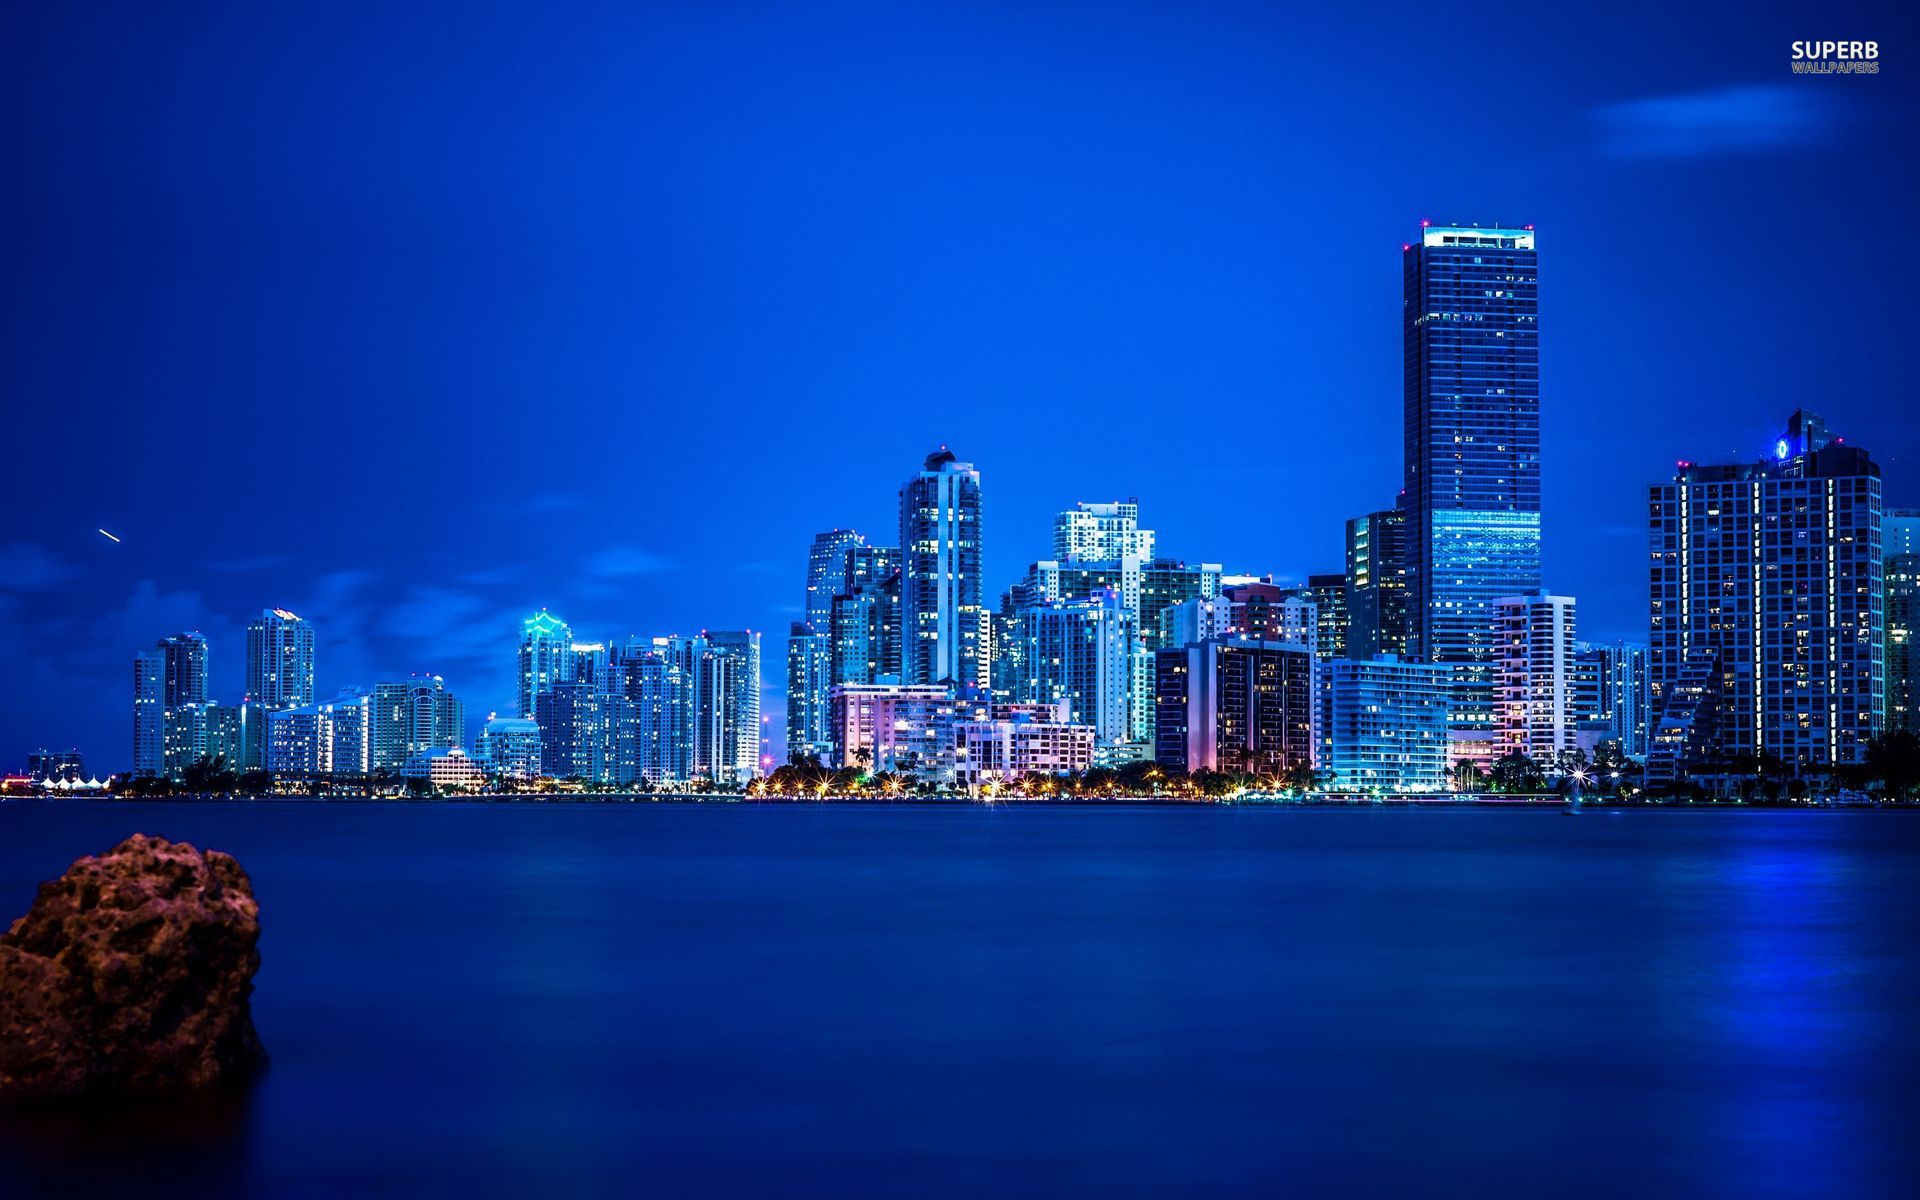 Miami Wallpapers 1920x1200